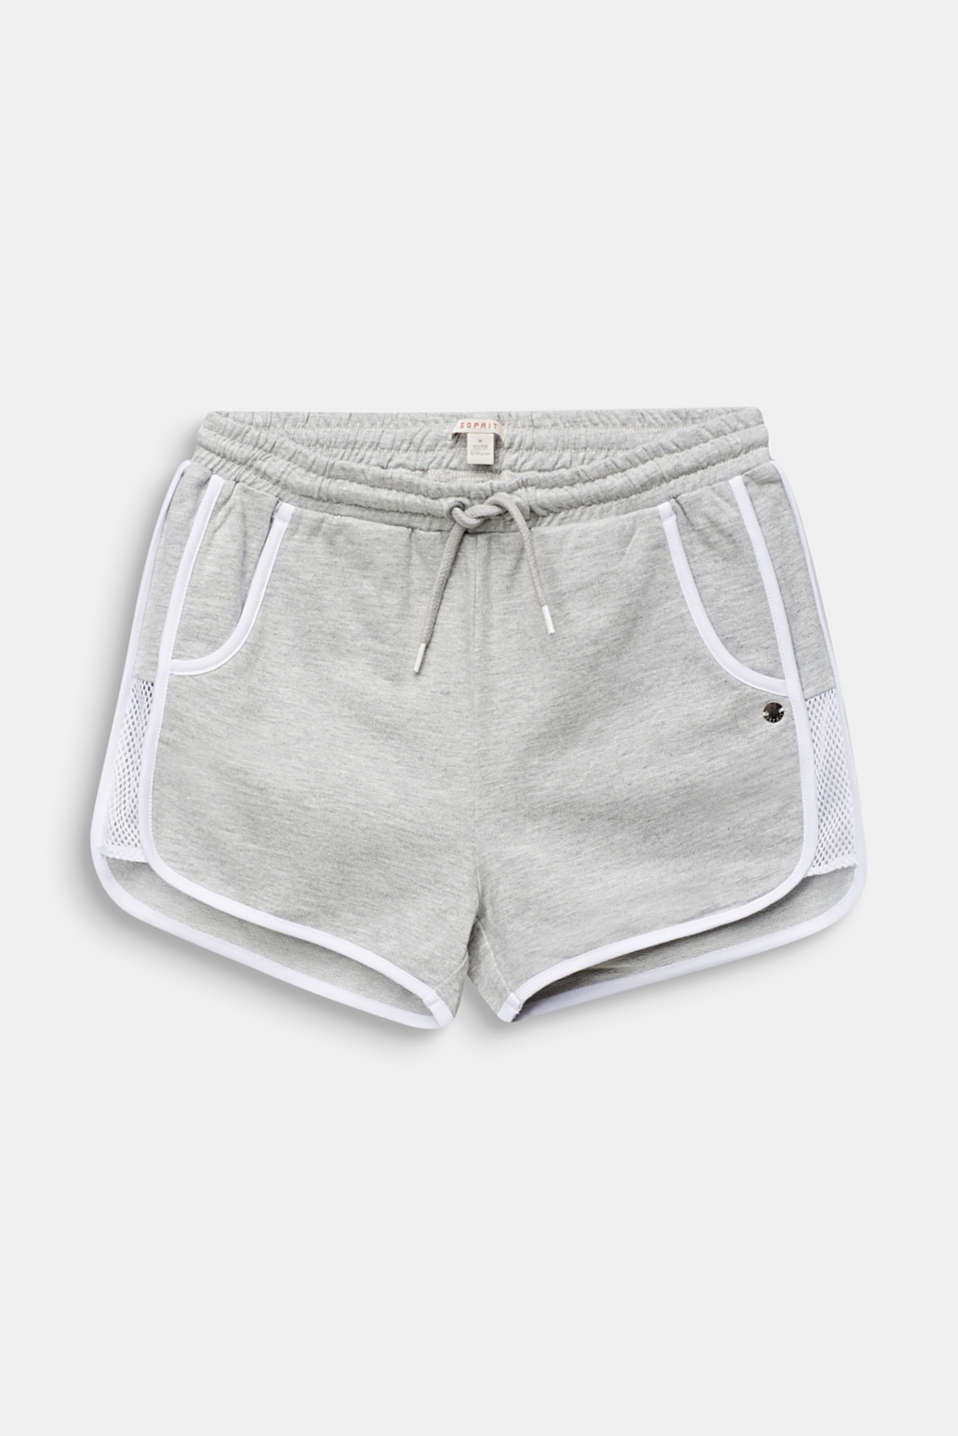 Sweatshirt shorts with net inserts, LCHEATHER SILVER, detail image number 0